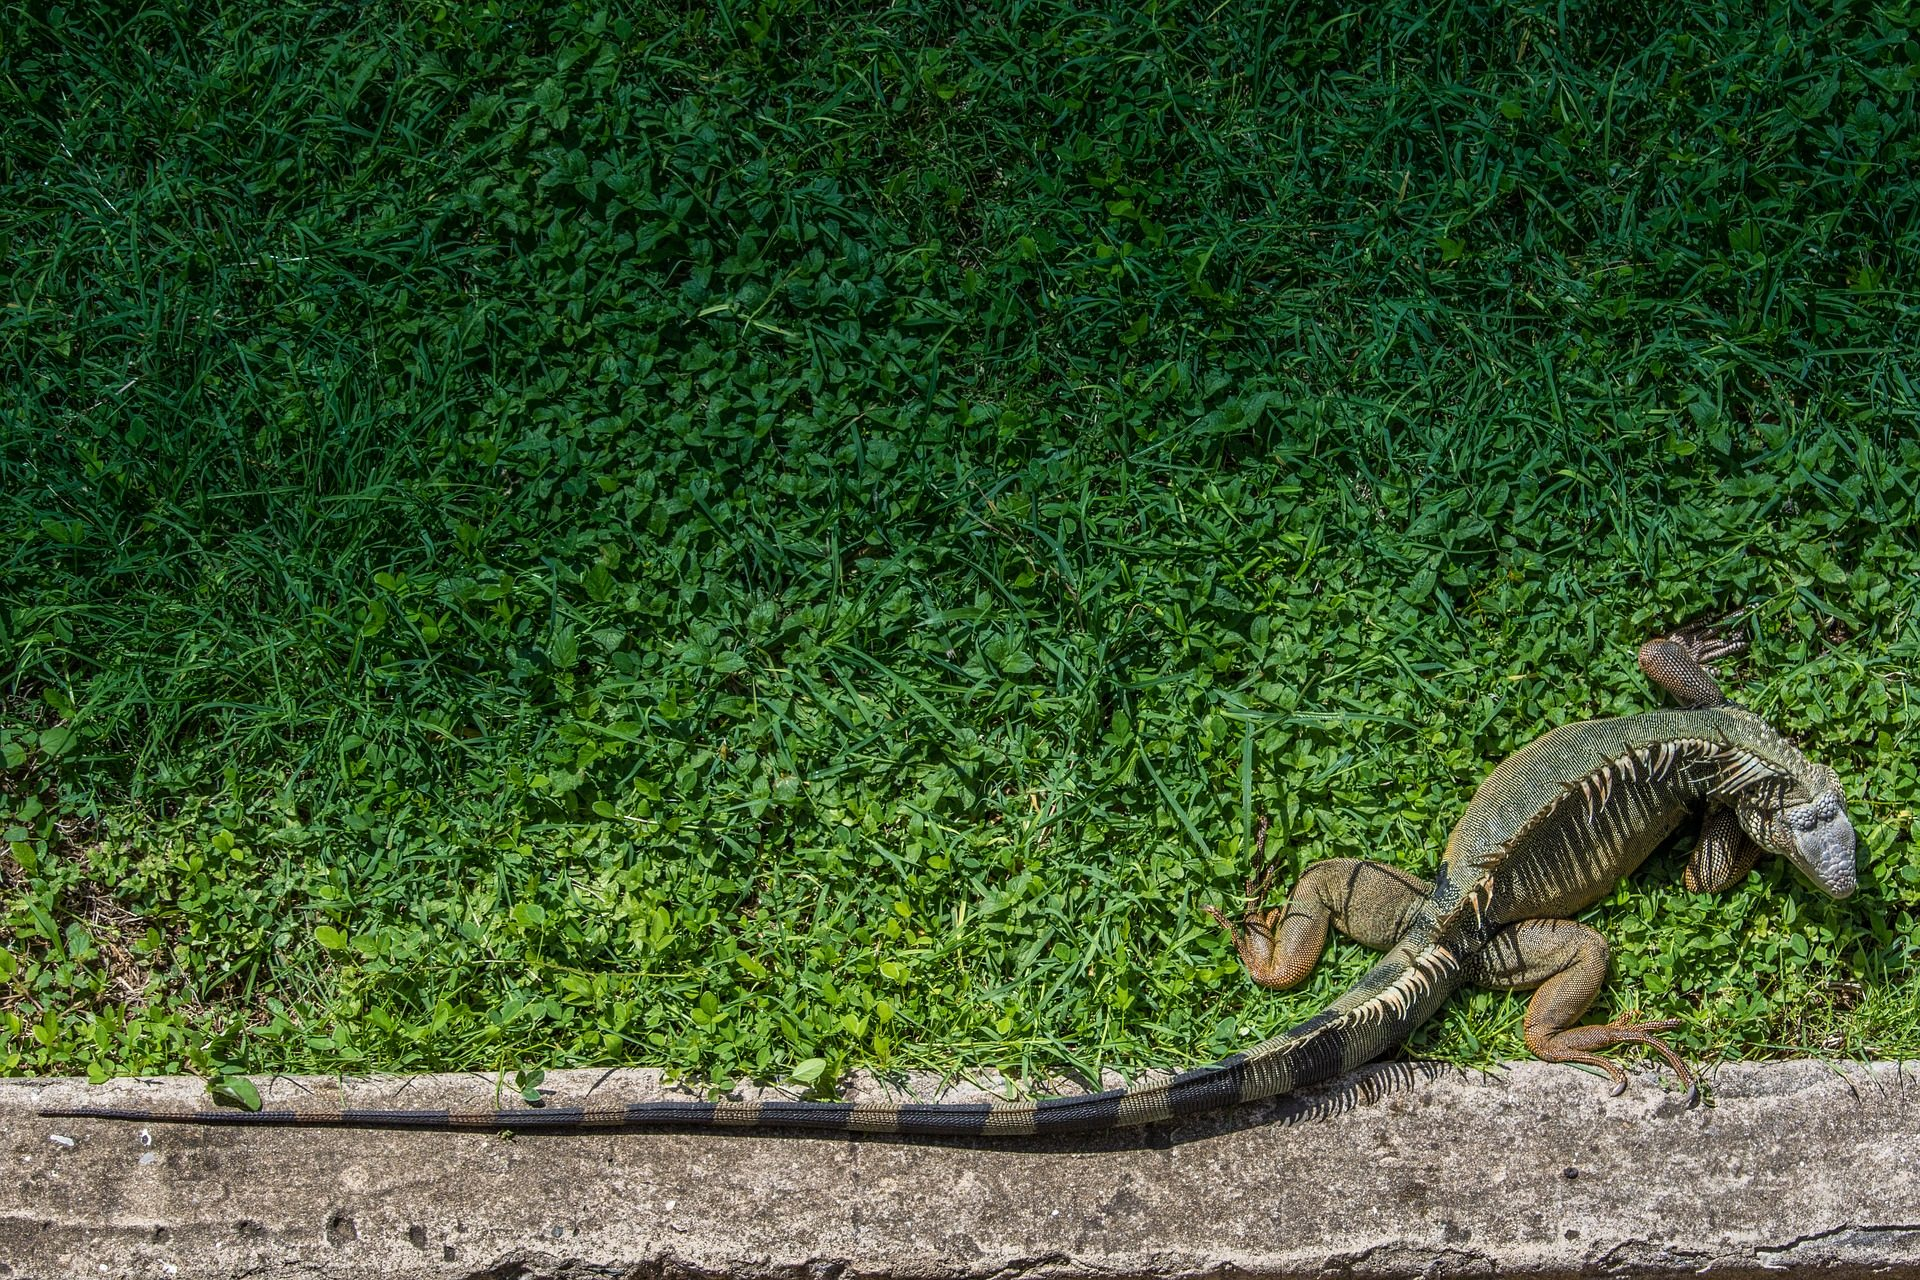 Iguane, Reptile, Jardin, Animal de compagnie, queue - Fonds d'écran HD - Professor-falken.com